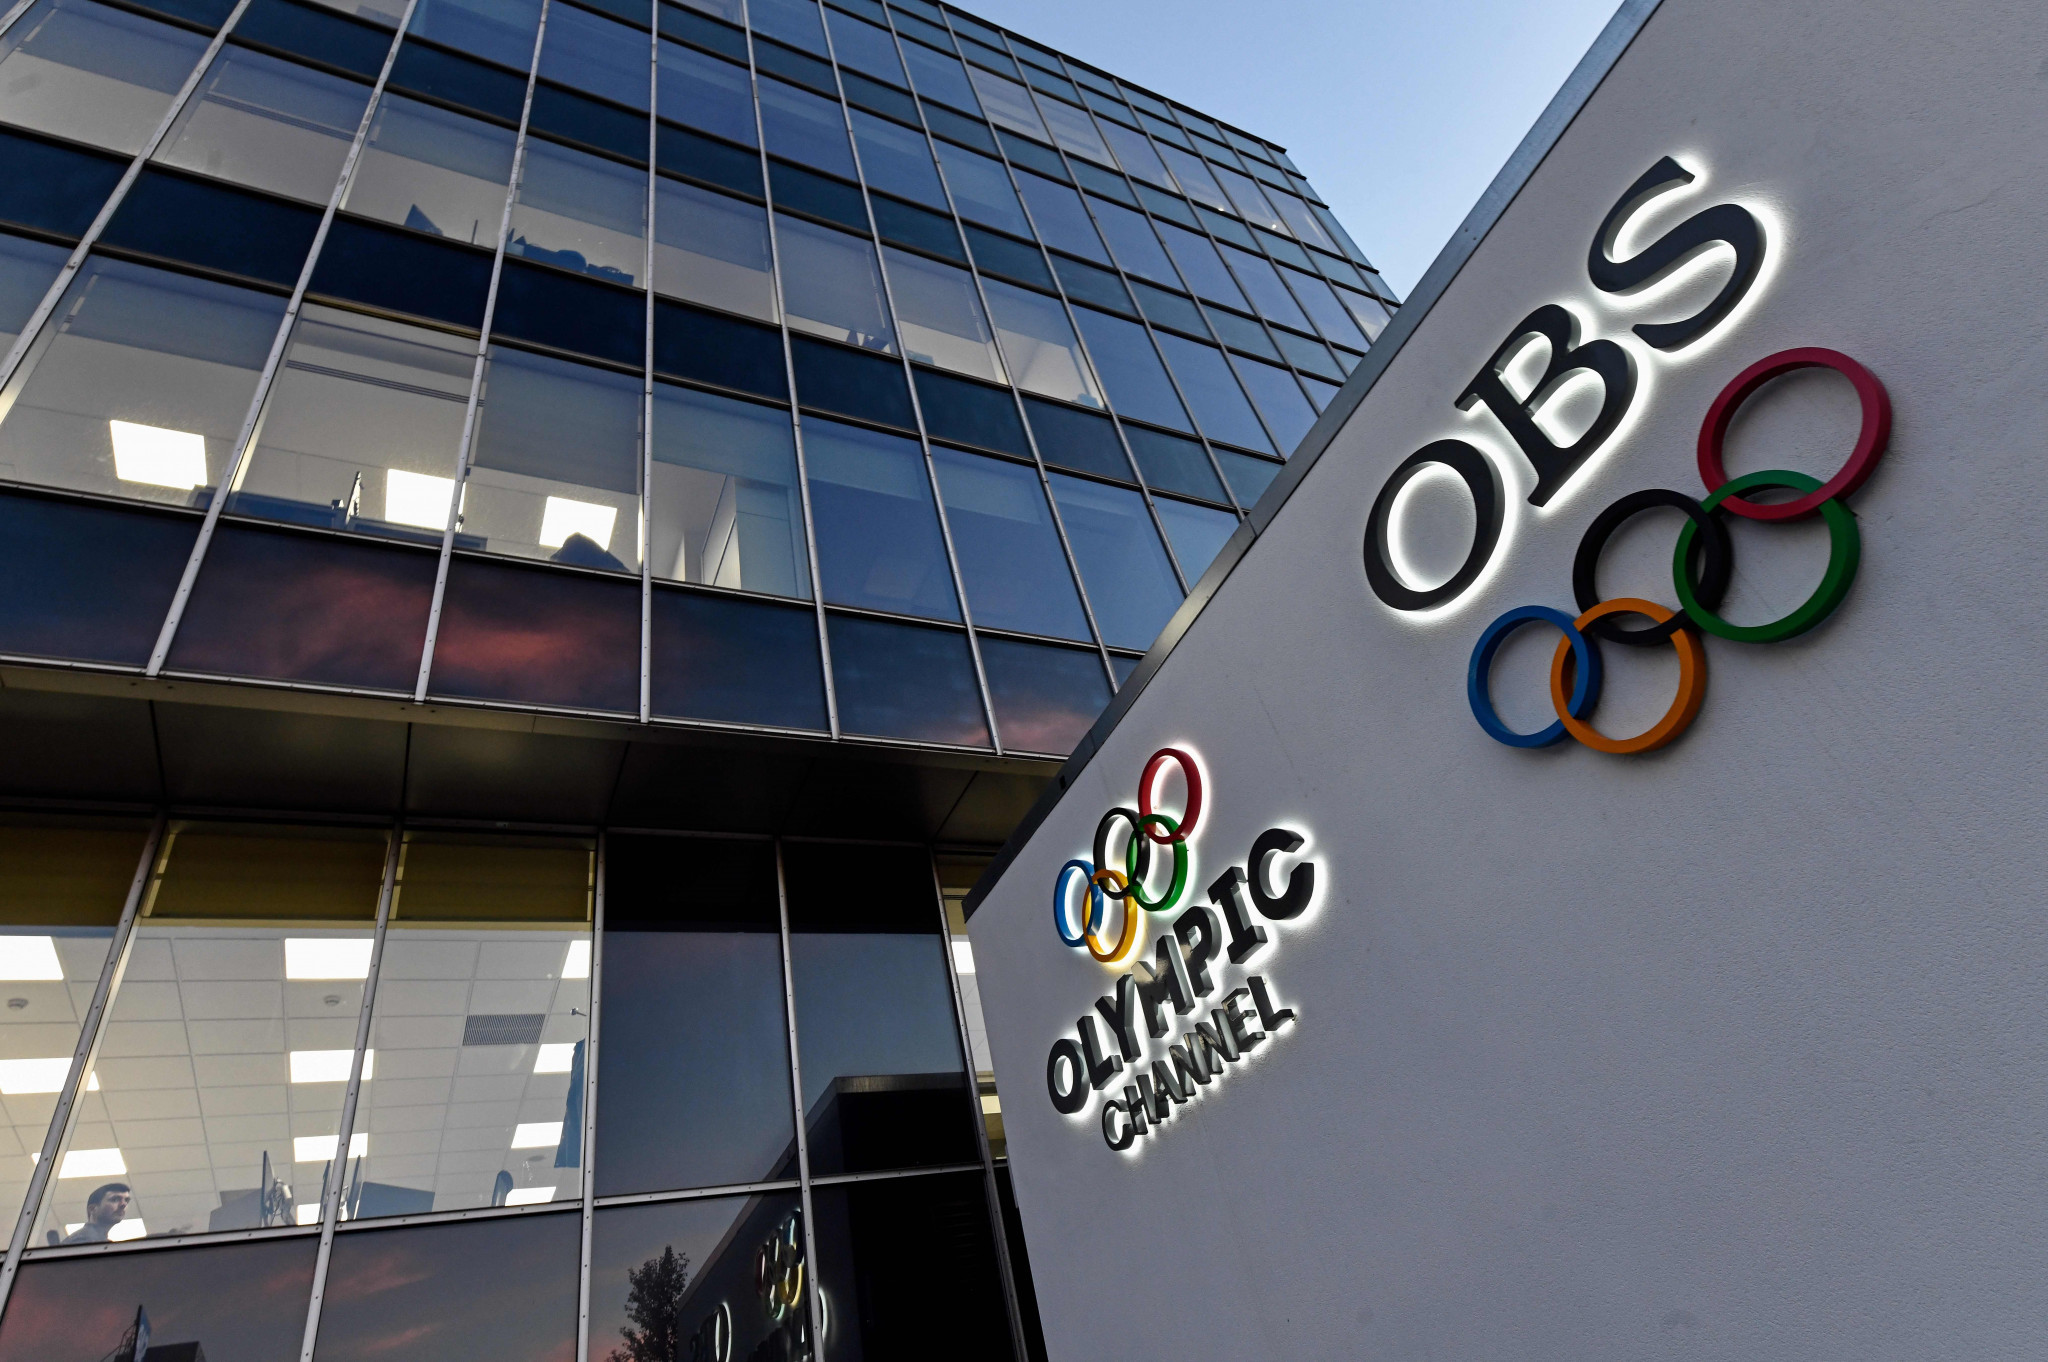 Launched in 2016, the Olympic Channel is an online platform developed by the International Olympic Committee ©Getty Images